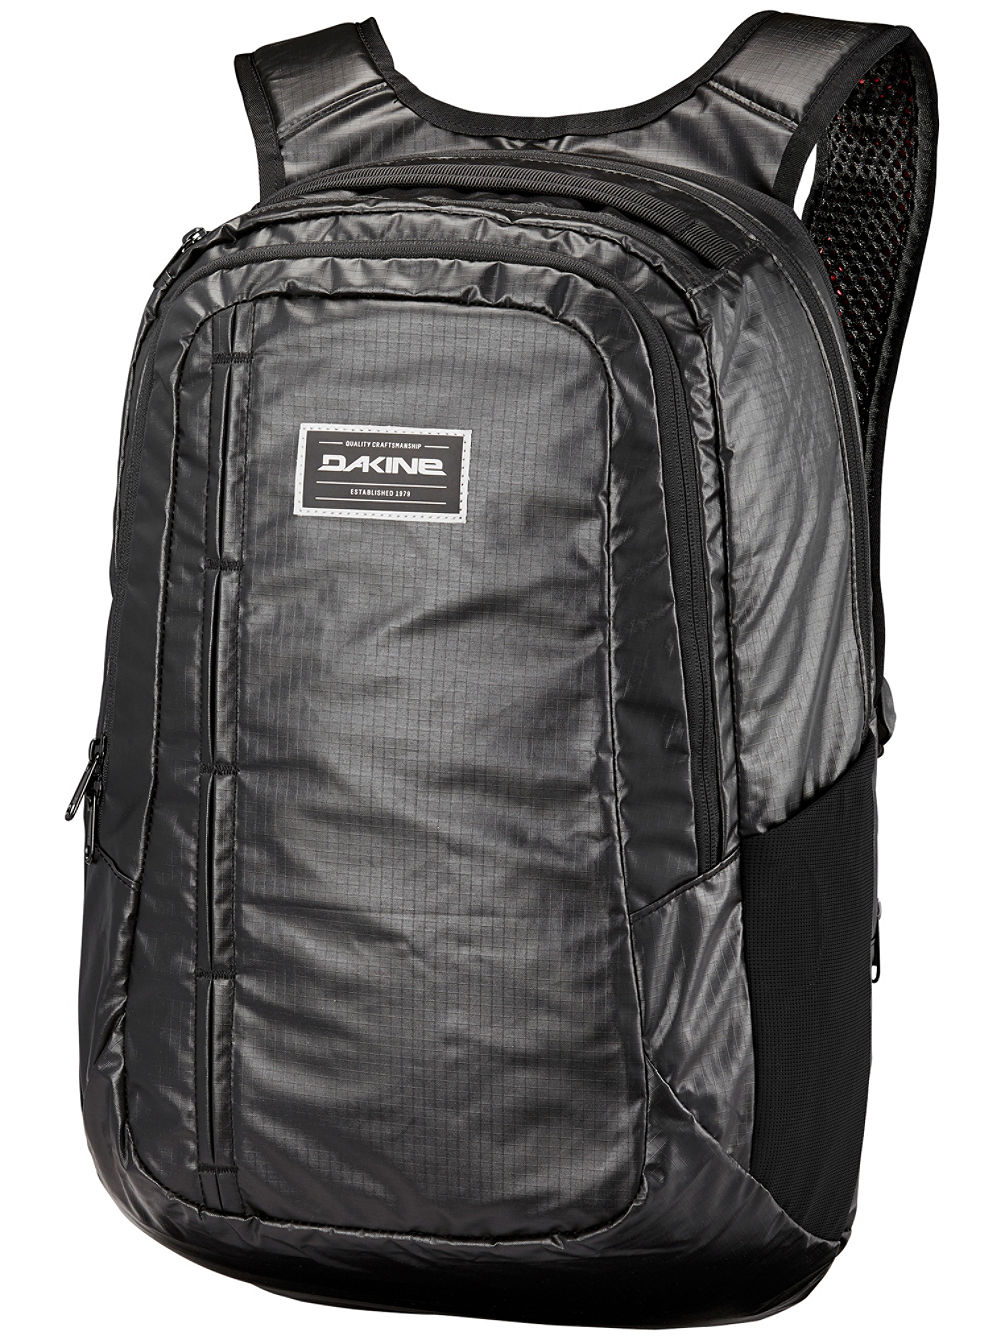 Patrol 32L Backpack